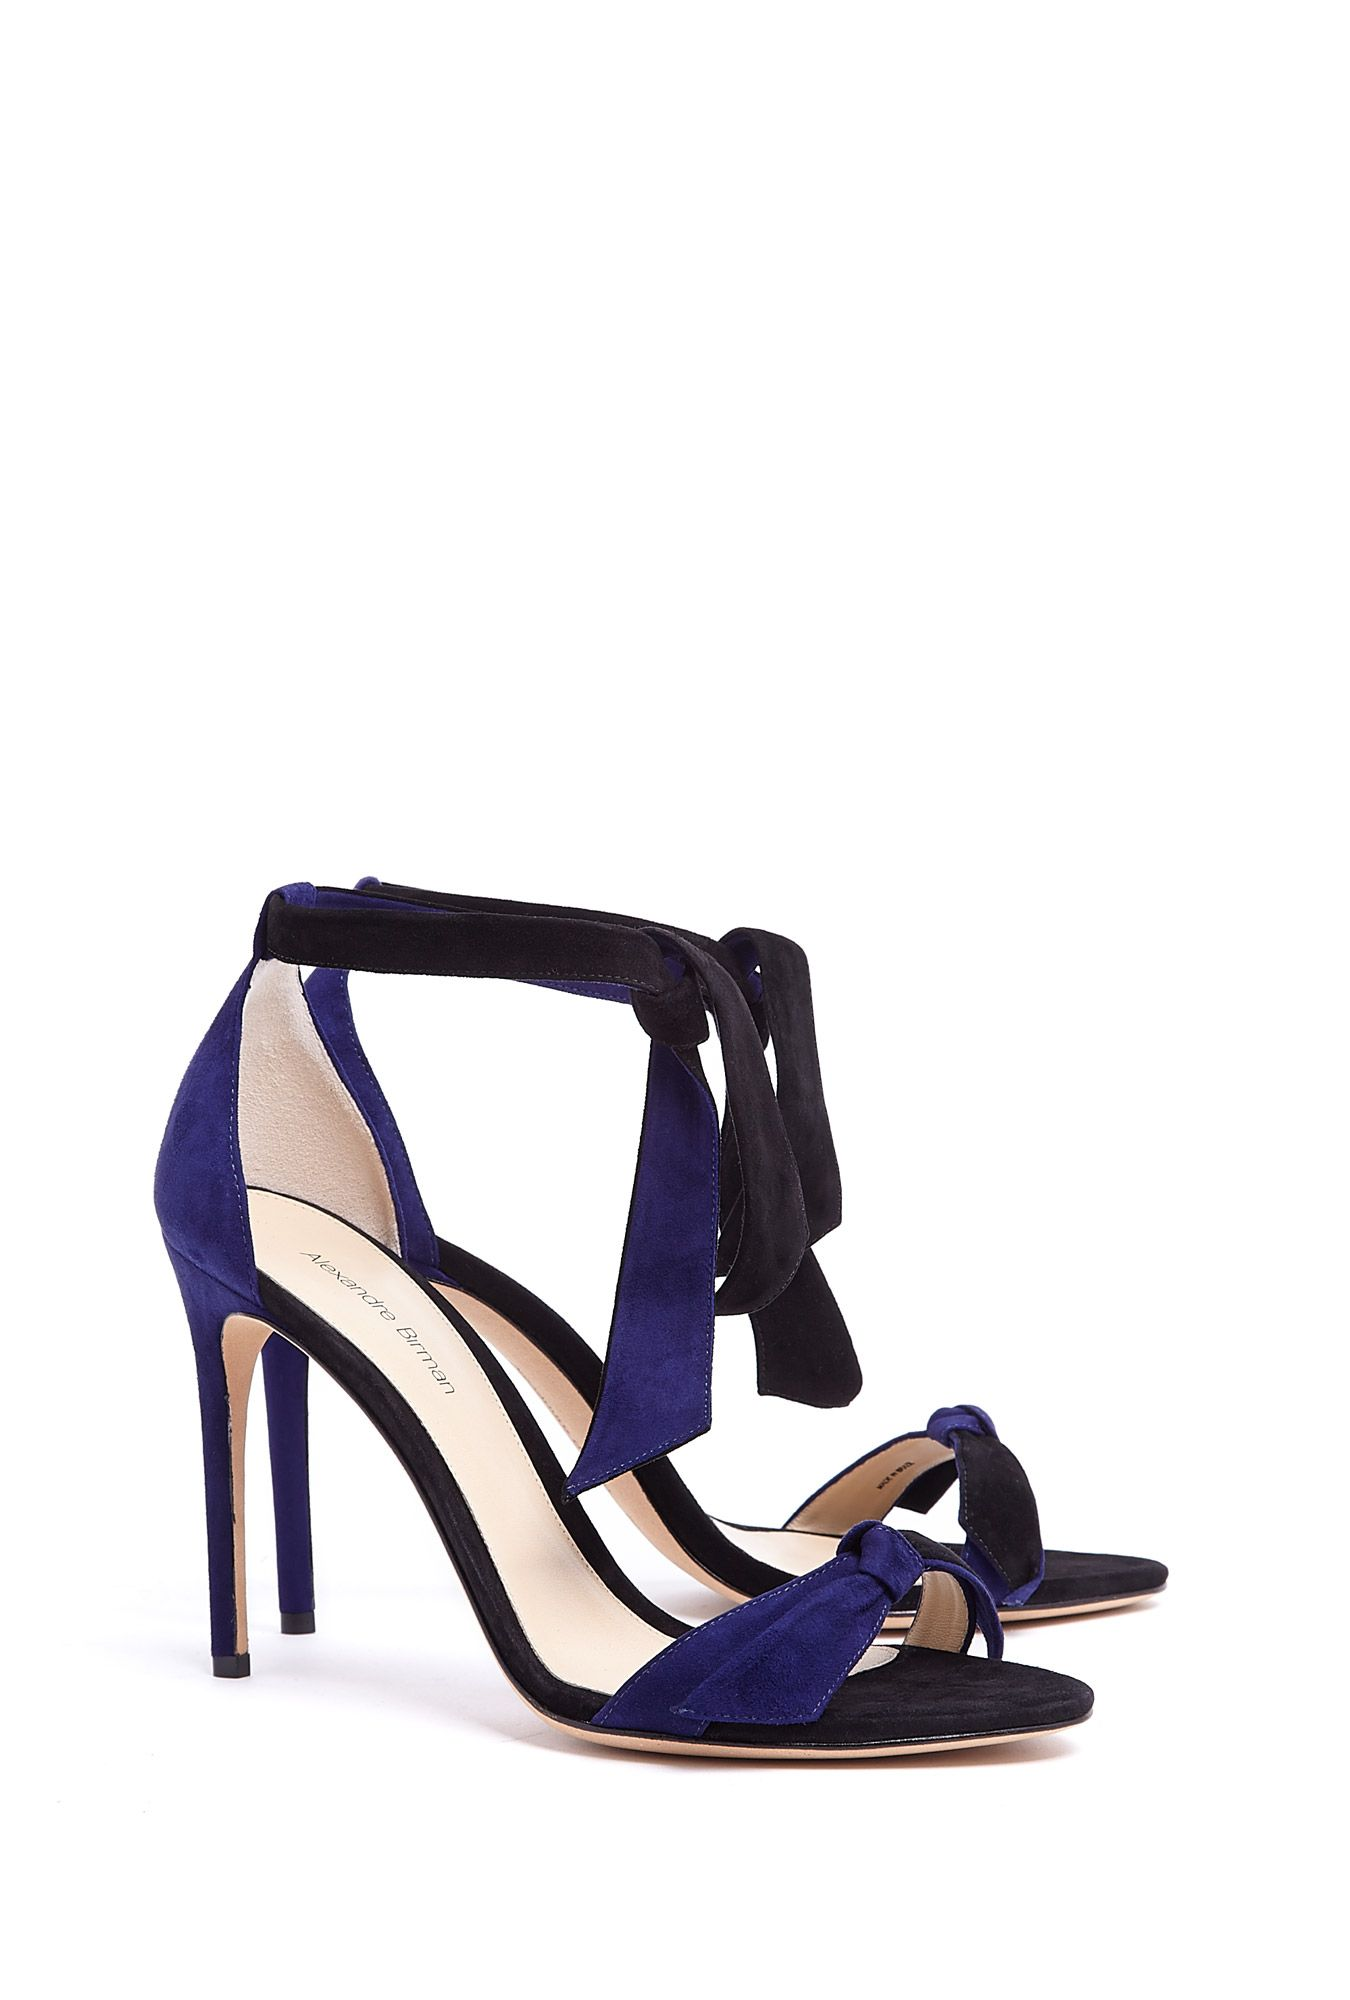 Photo of Tie-Fastening Suede Sandals by Alexandre Birman – Oooooh Shoes